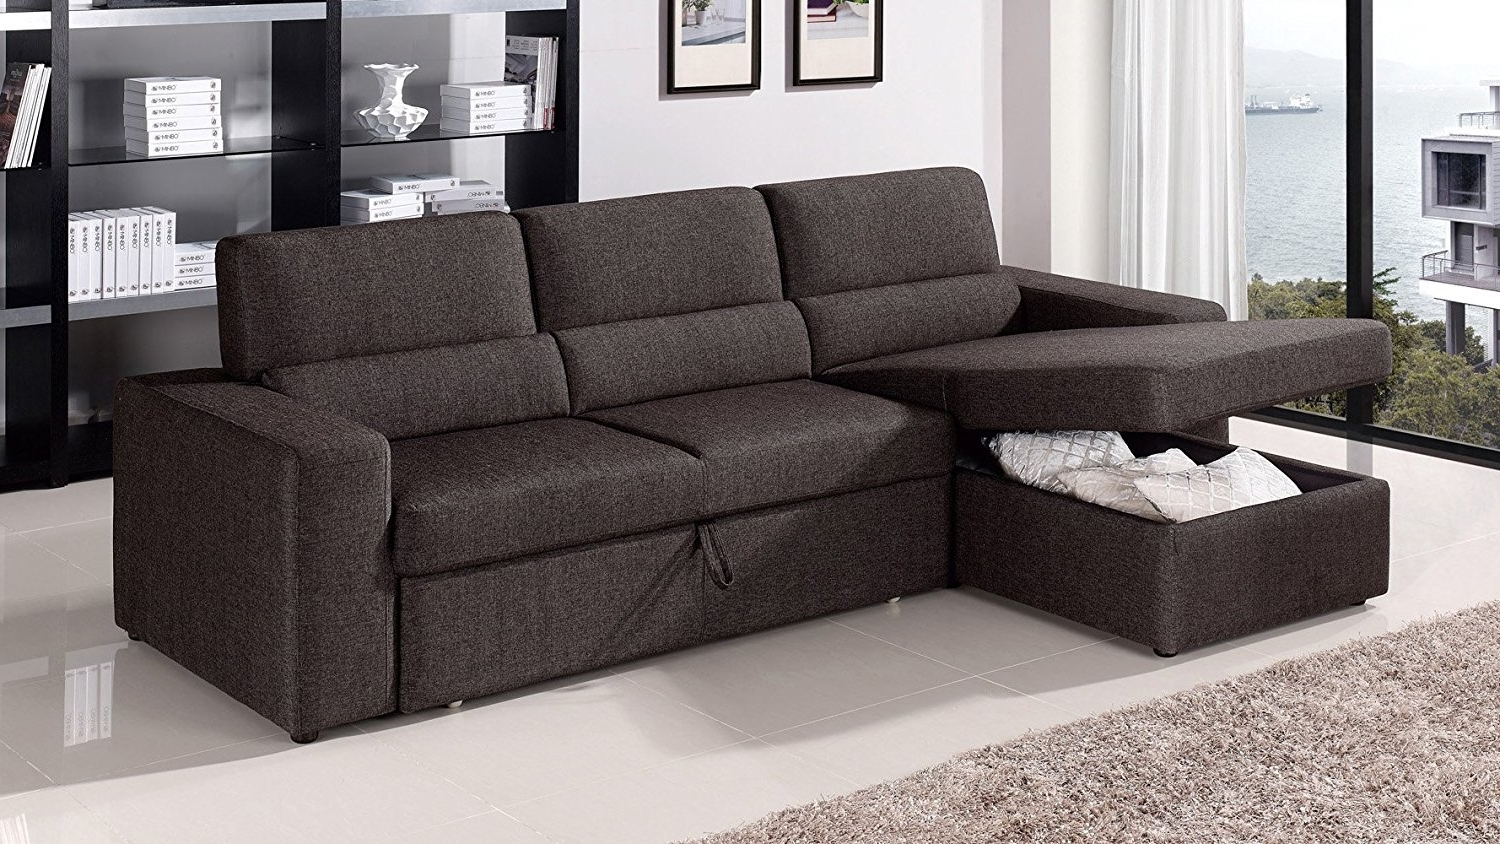 Best And Newest Sofa Sleepers With Chaise Pertaining To Amazon: Black/brown Clubber Sleeper Sectional Sofa – Left (View 2 of 15)